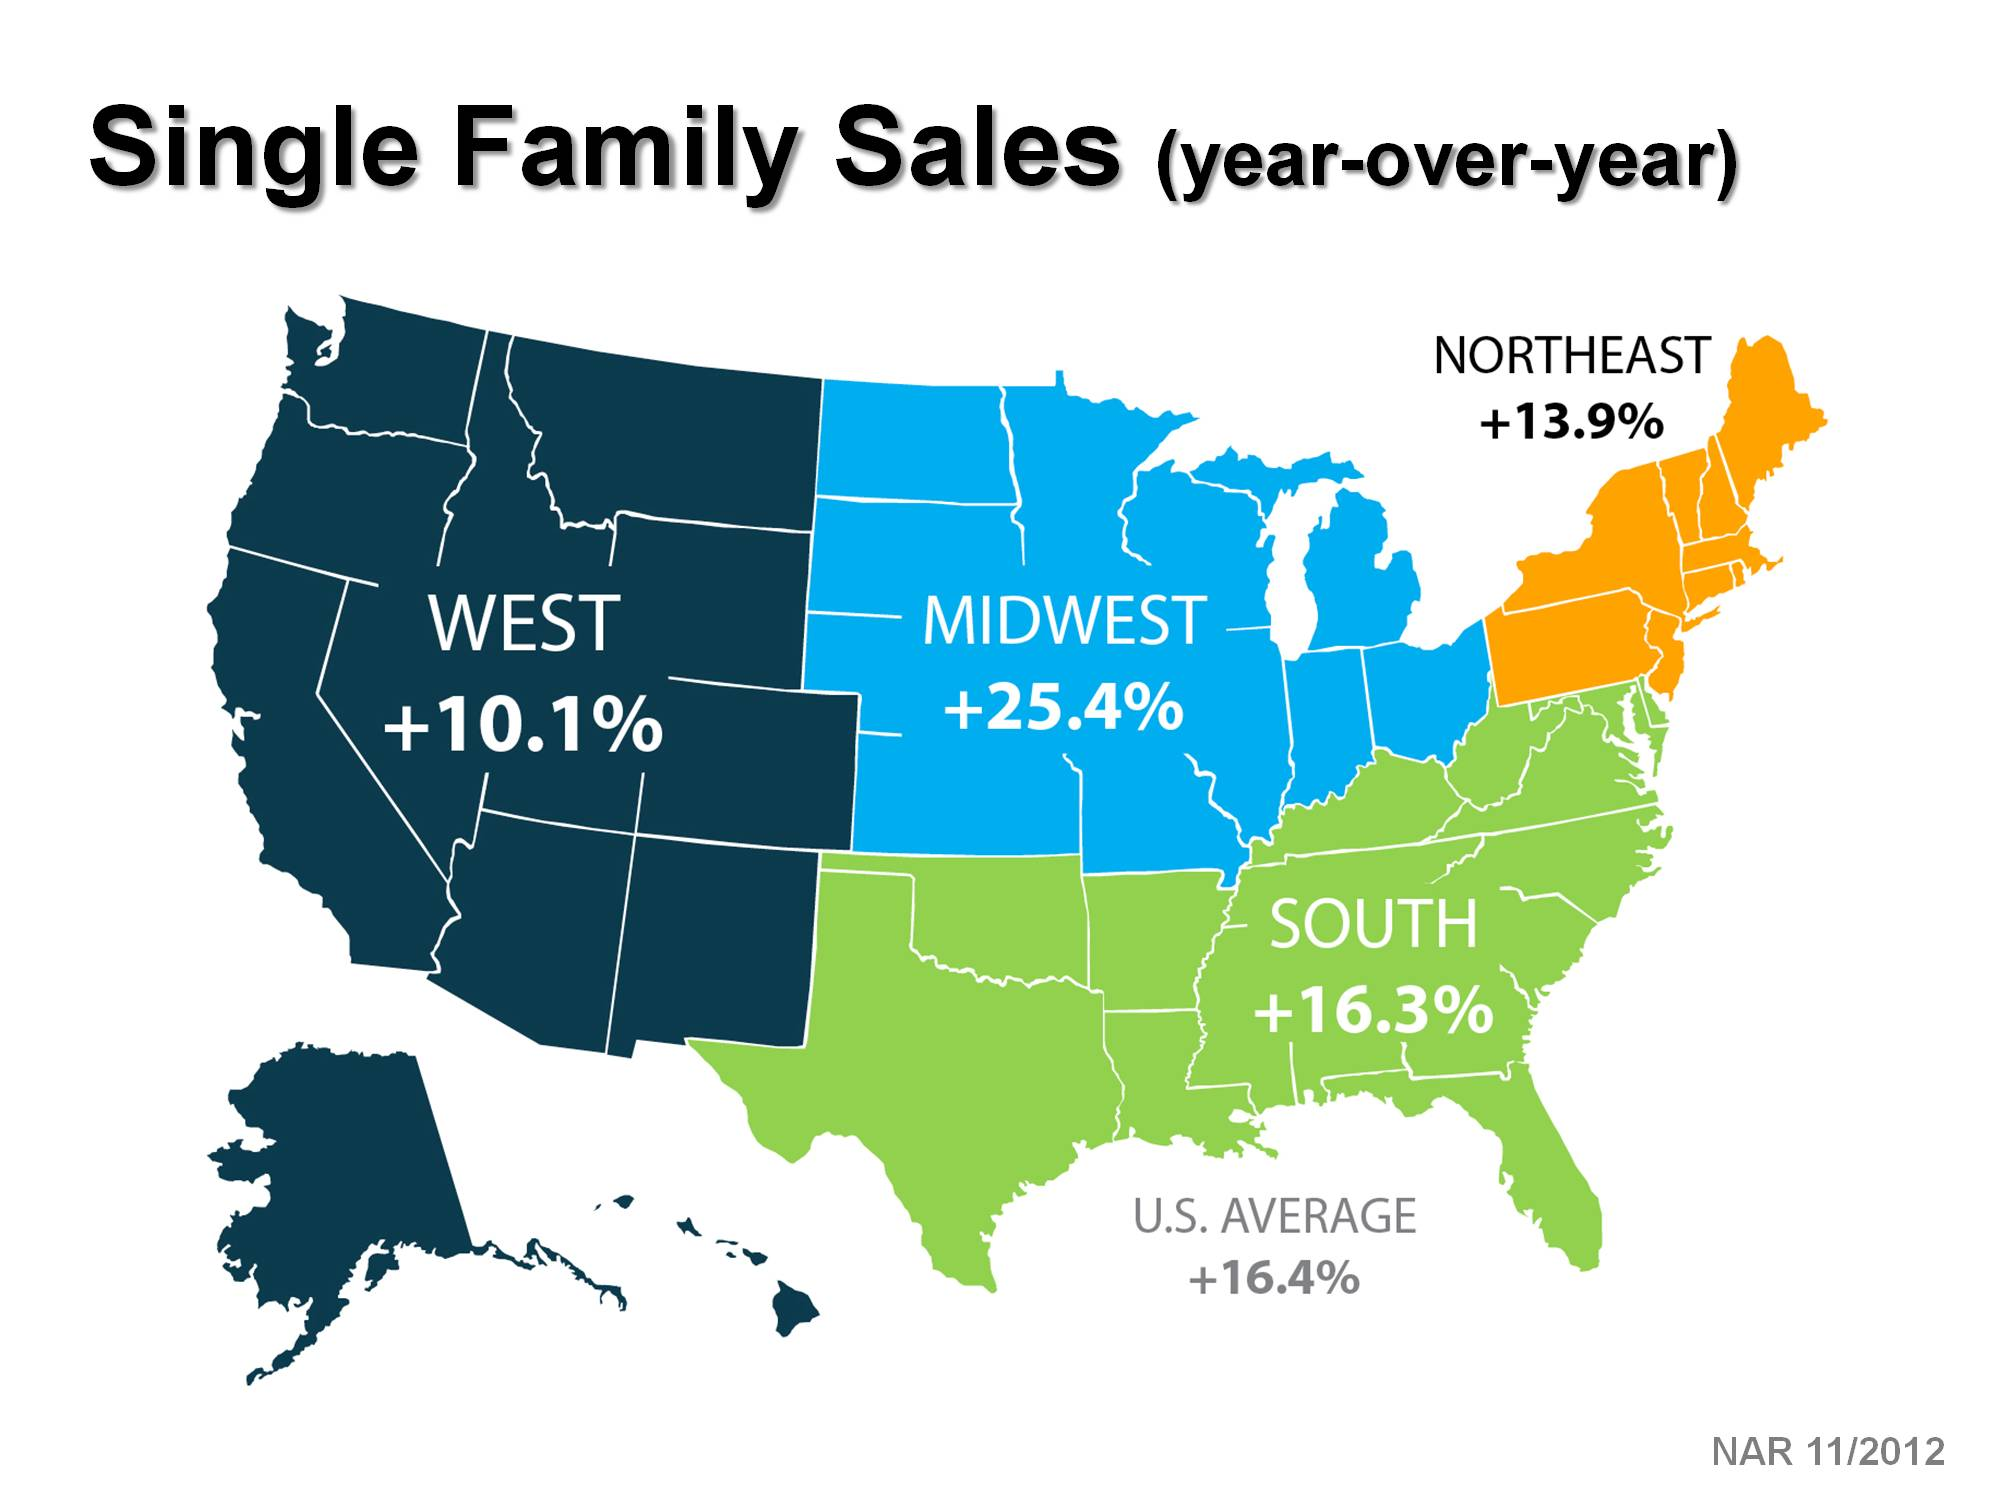 Sales In The Midwest Higher Than The Rest Of United States